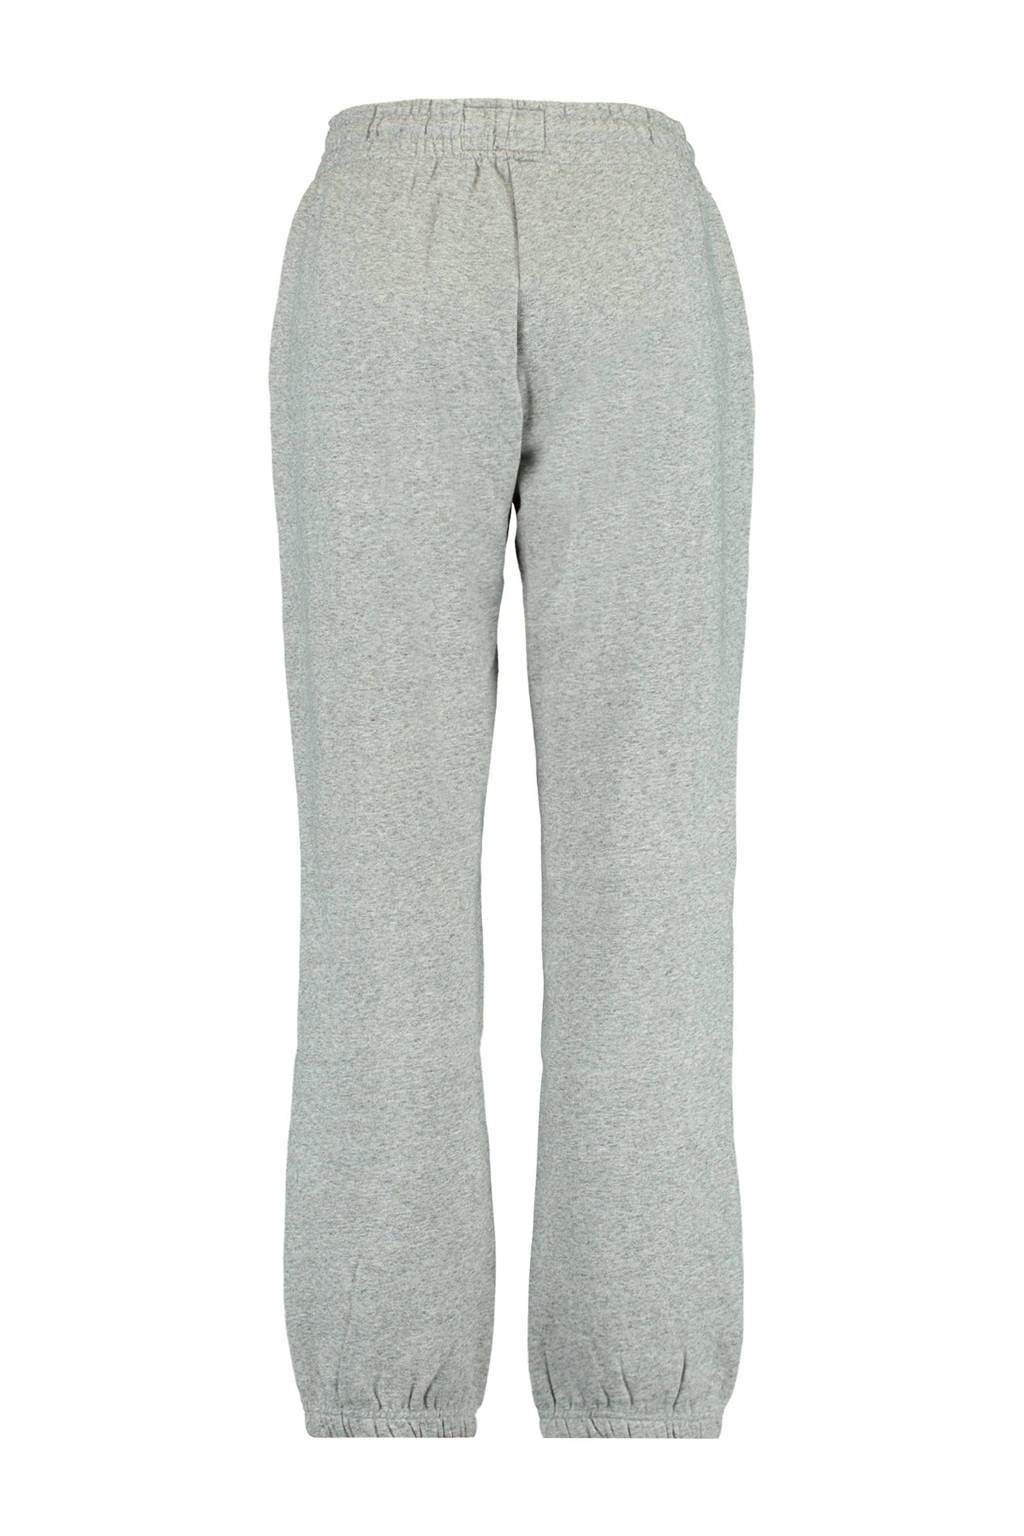 America Today regular fit joggingbroek Cou van biologisch katoen mid grey melange